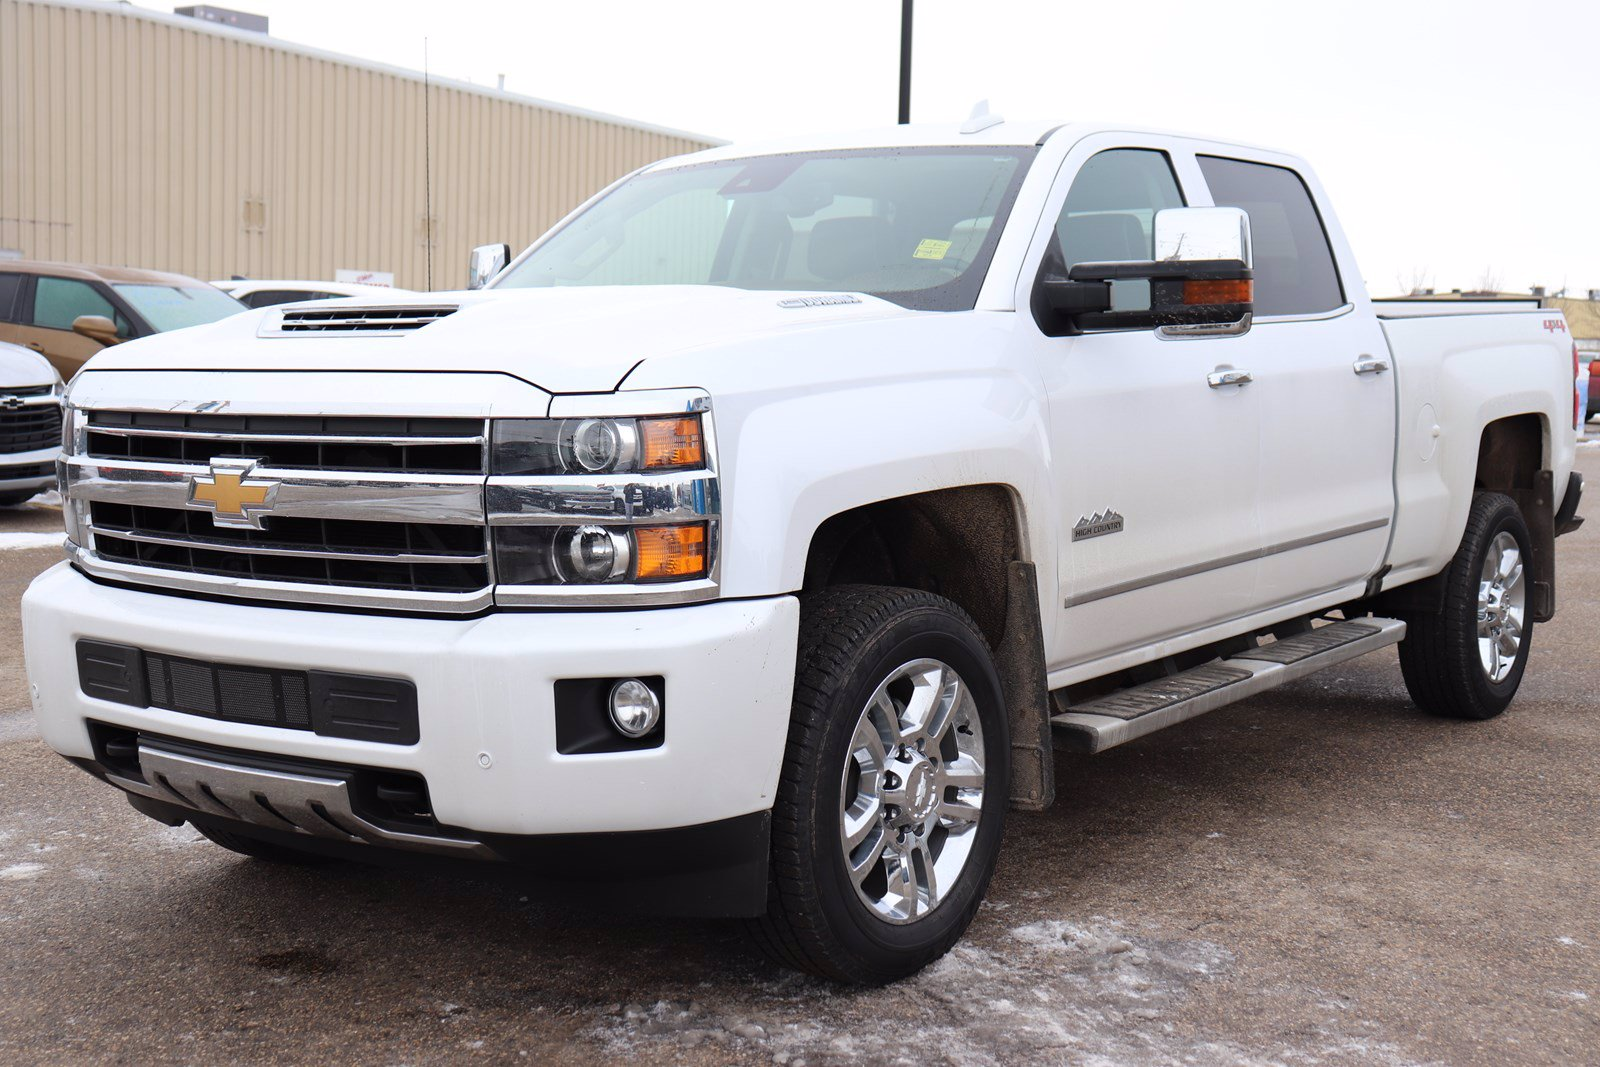 Certified Pre-Owned 2019 Chevrolet Silverado 2500HD High Country - Heated/Cooled Leather, Nav, Sunroof